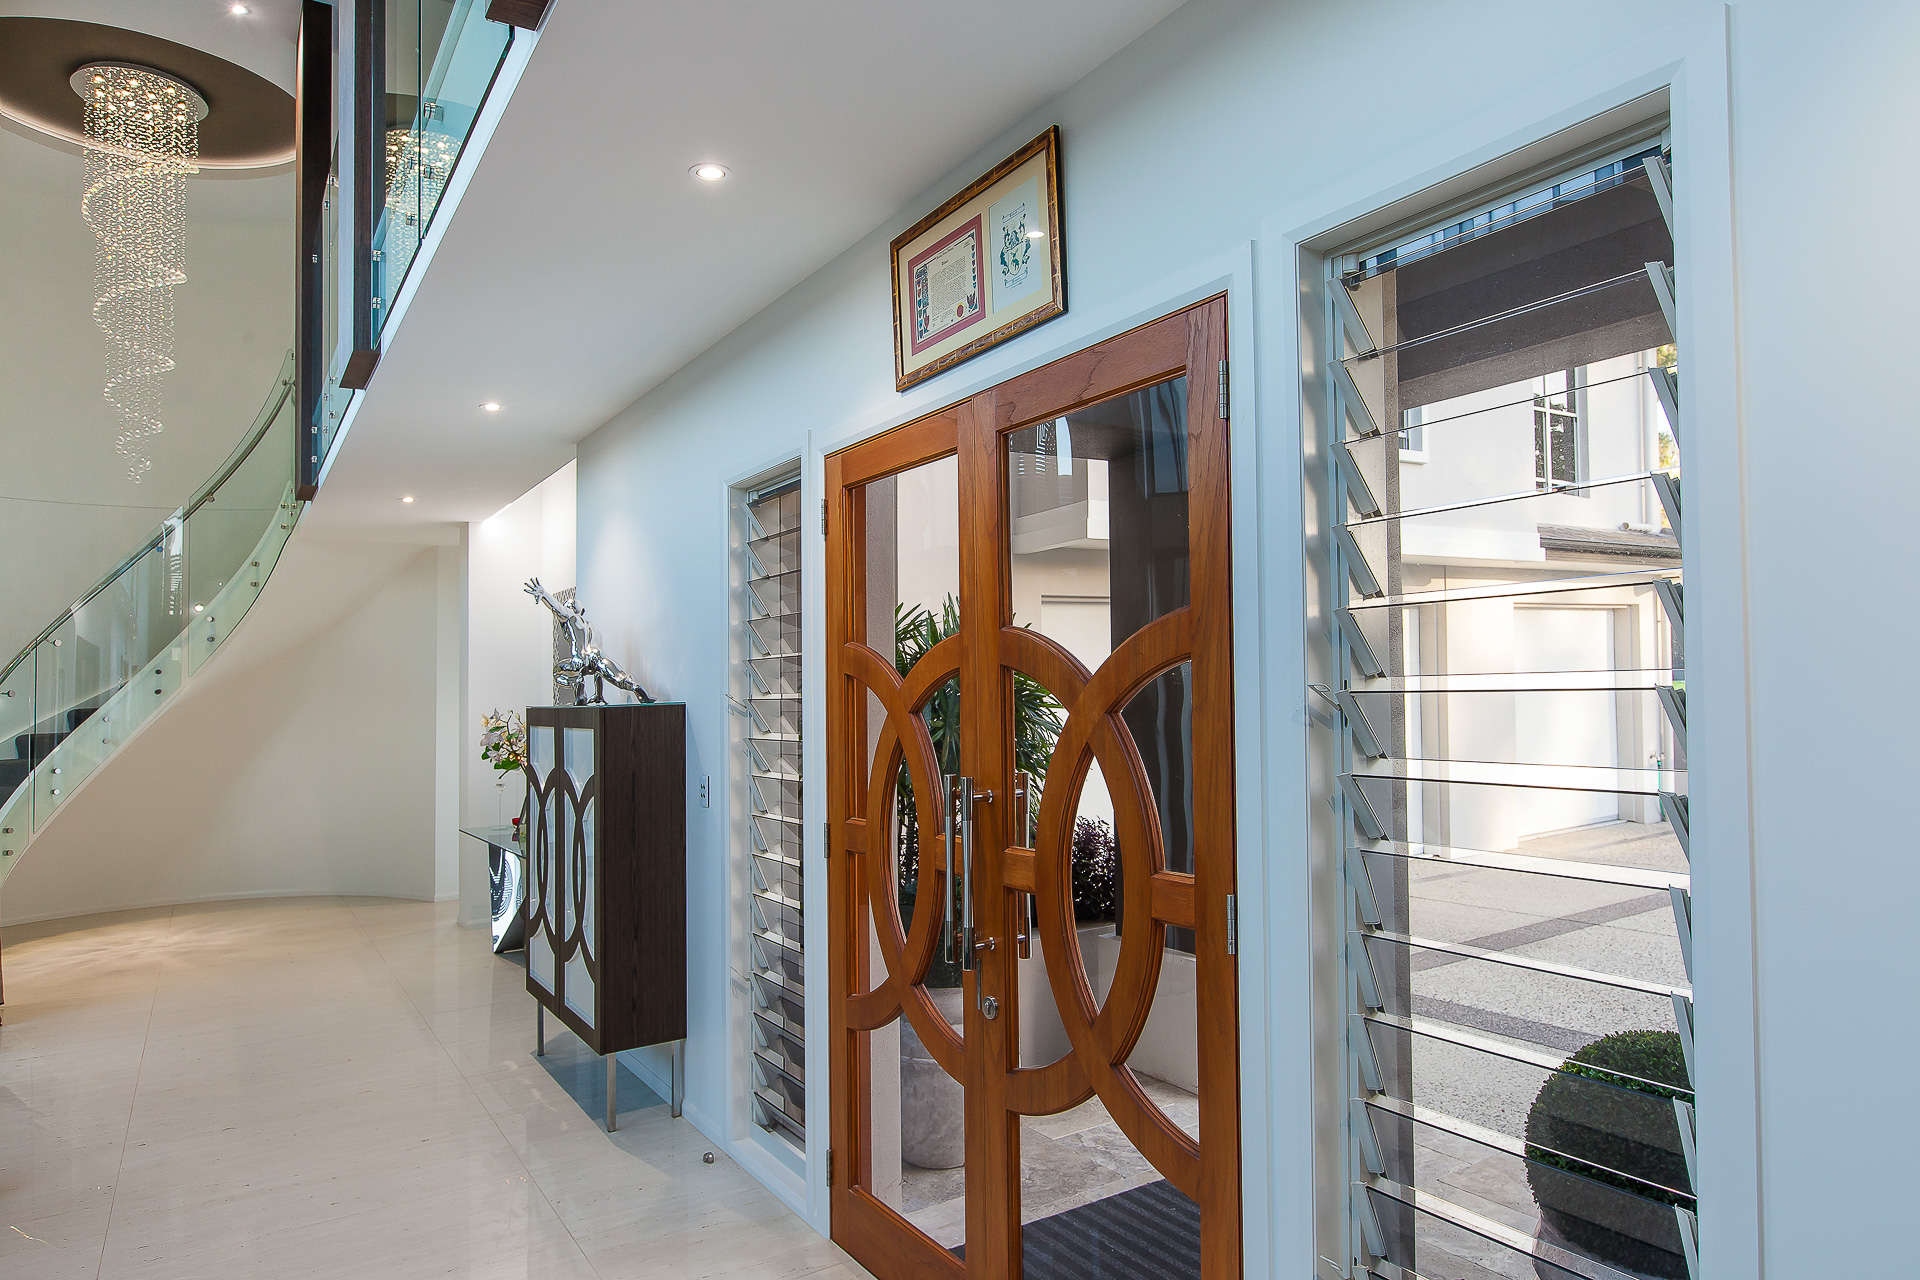 Luxury home, entry, spiral staircase, chic, classy, marble tiles, custom furniture, cinema doors, minka joinery